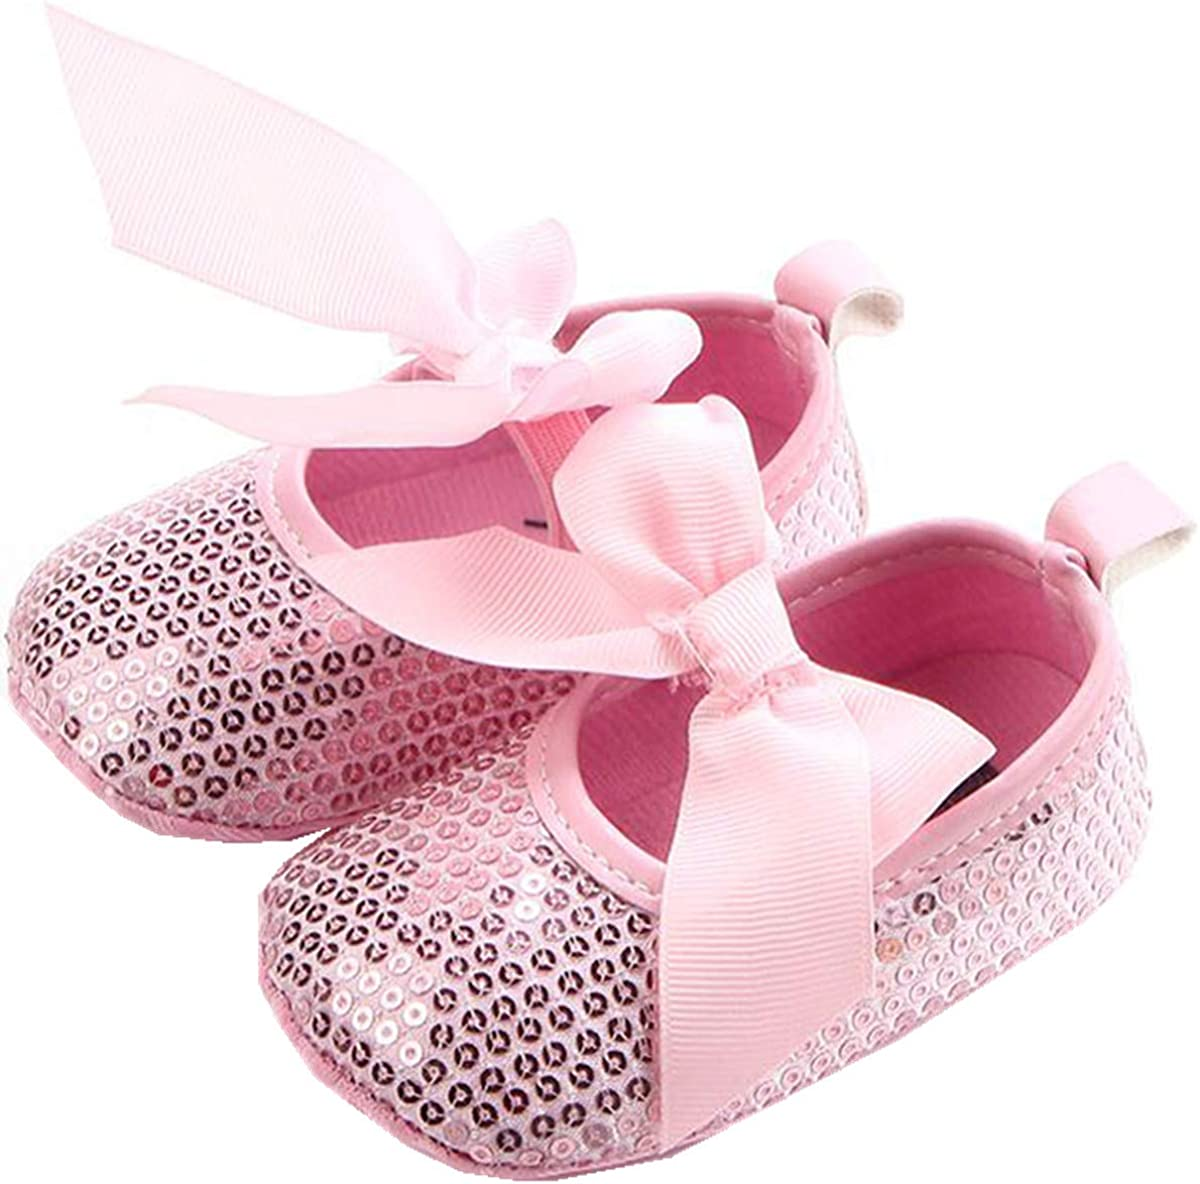 ADIASEN Baby Girl Shoes,Sequine Glitter Bowknot Soft Non-Slip Toddler Shoes,Band Bowknot Infants Shoes,Newborn Shoes